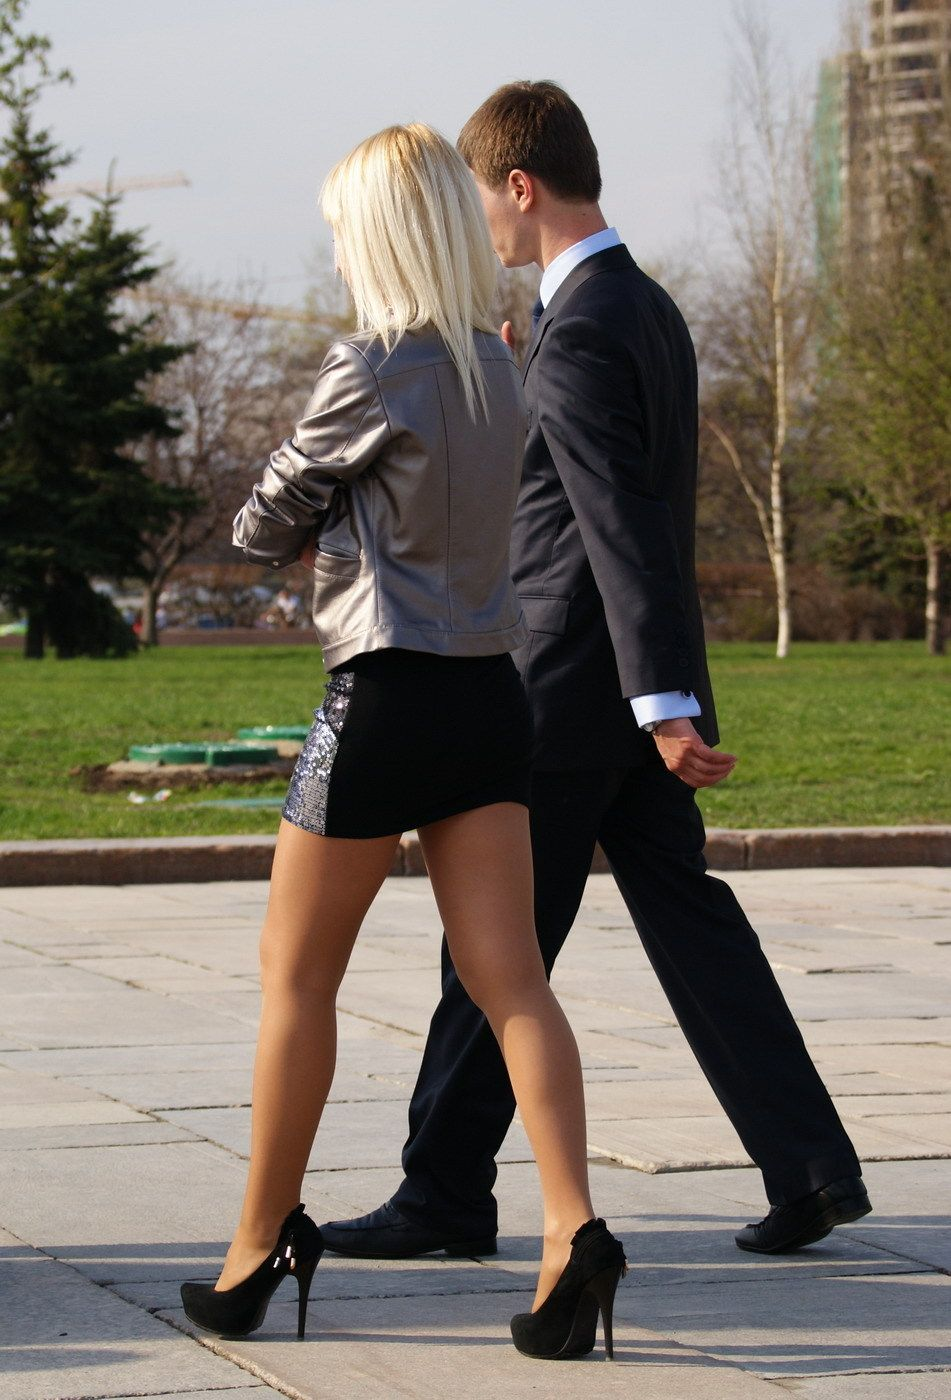 f5970079217 The best pantyhose candids! All photos are found by me and from the public  domain.